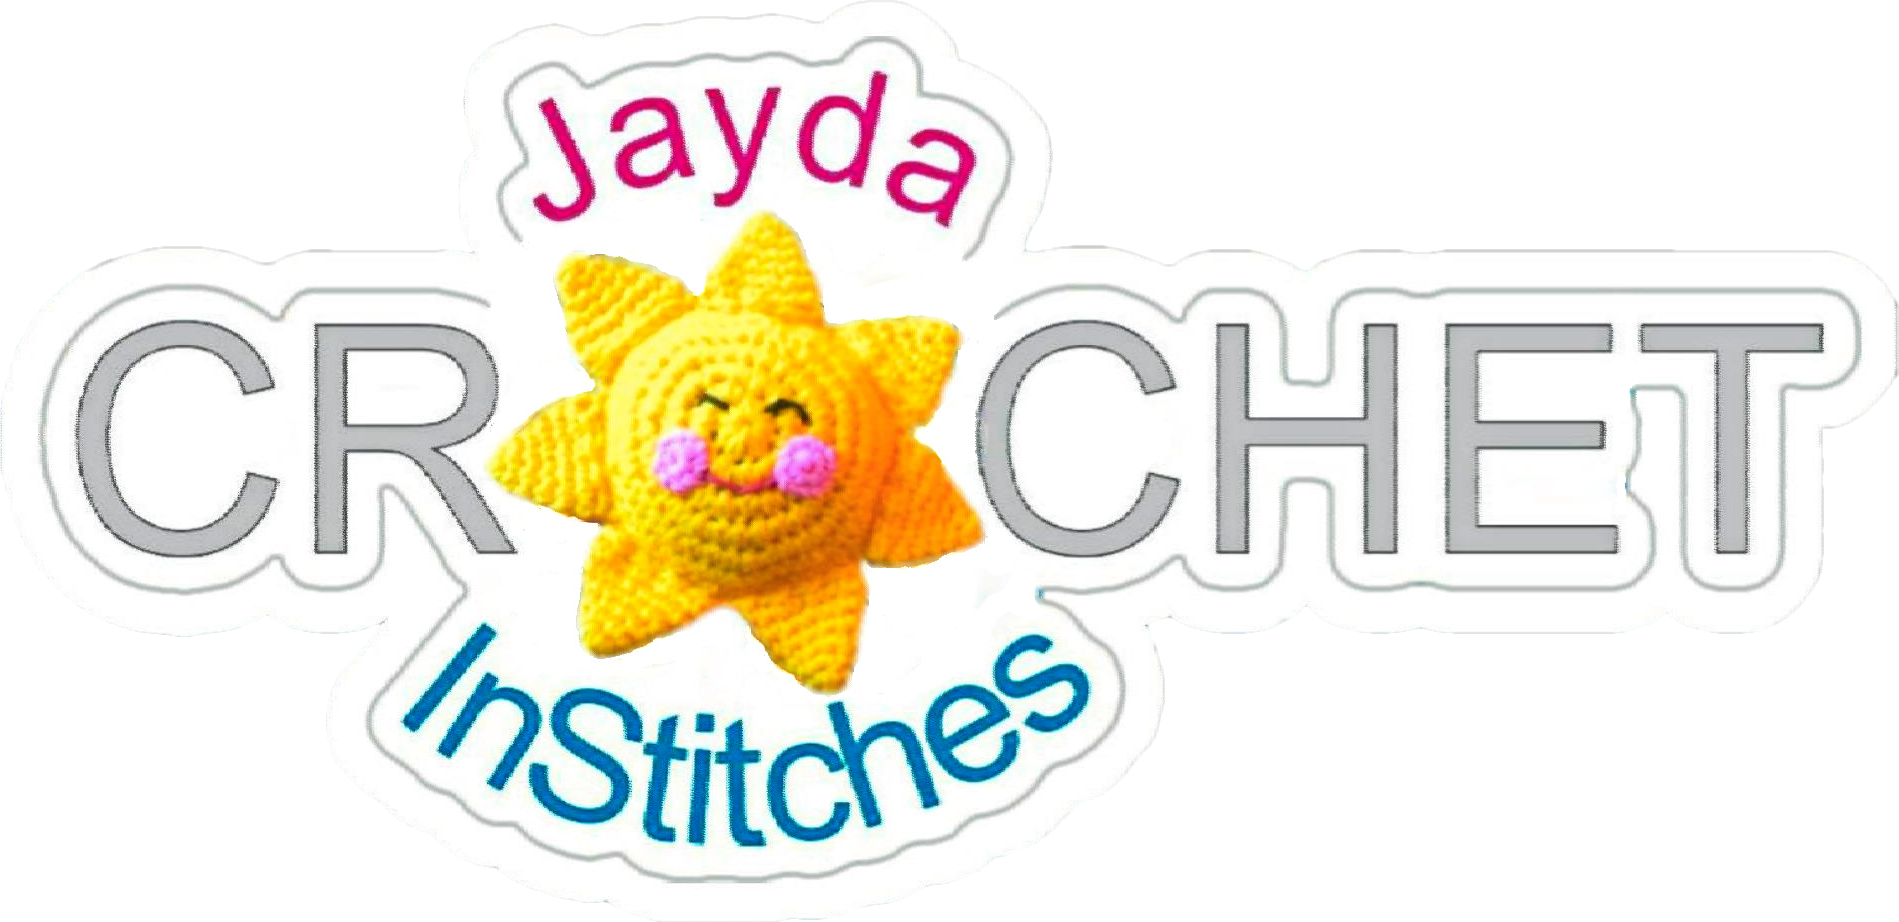 Jayda InStitches